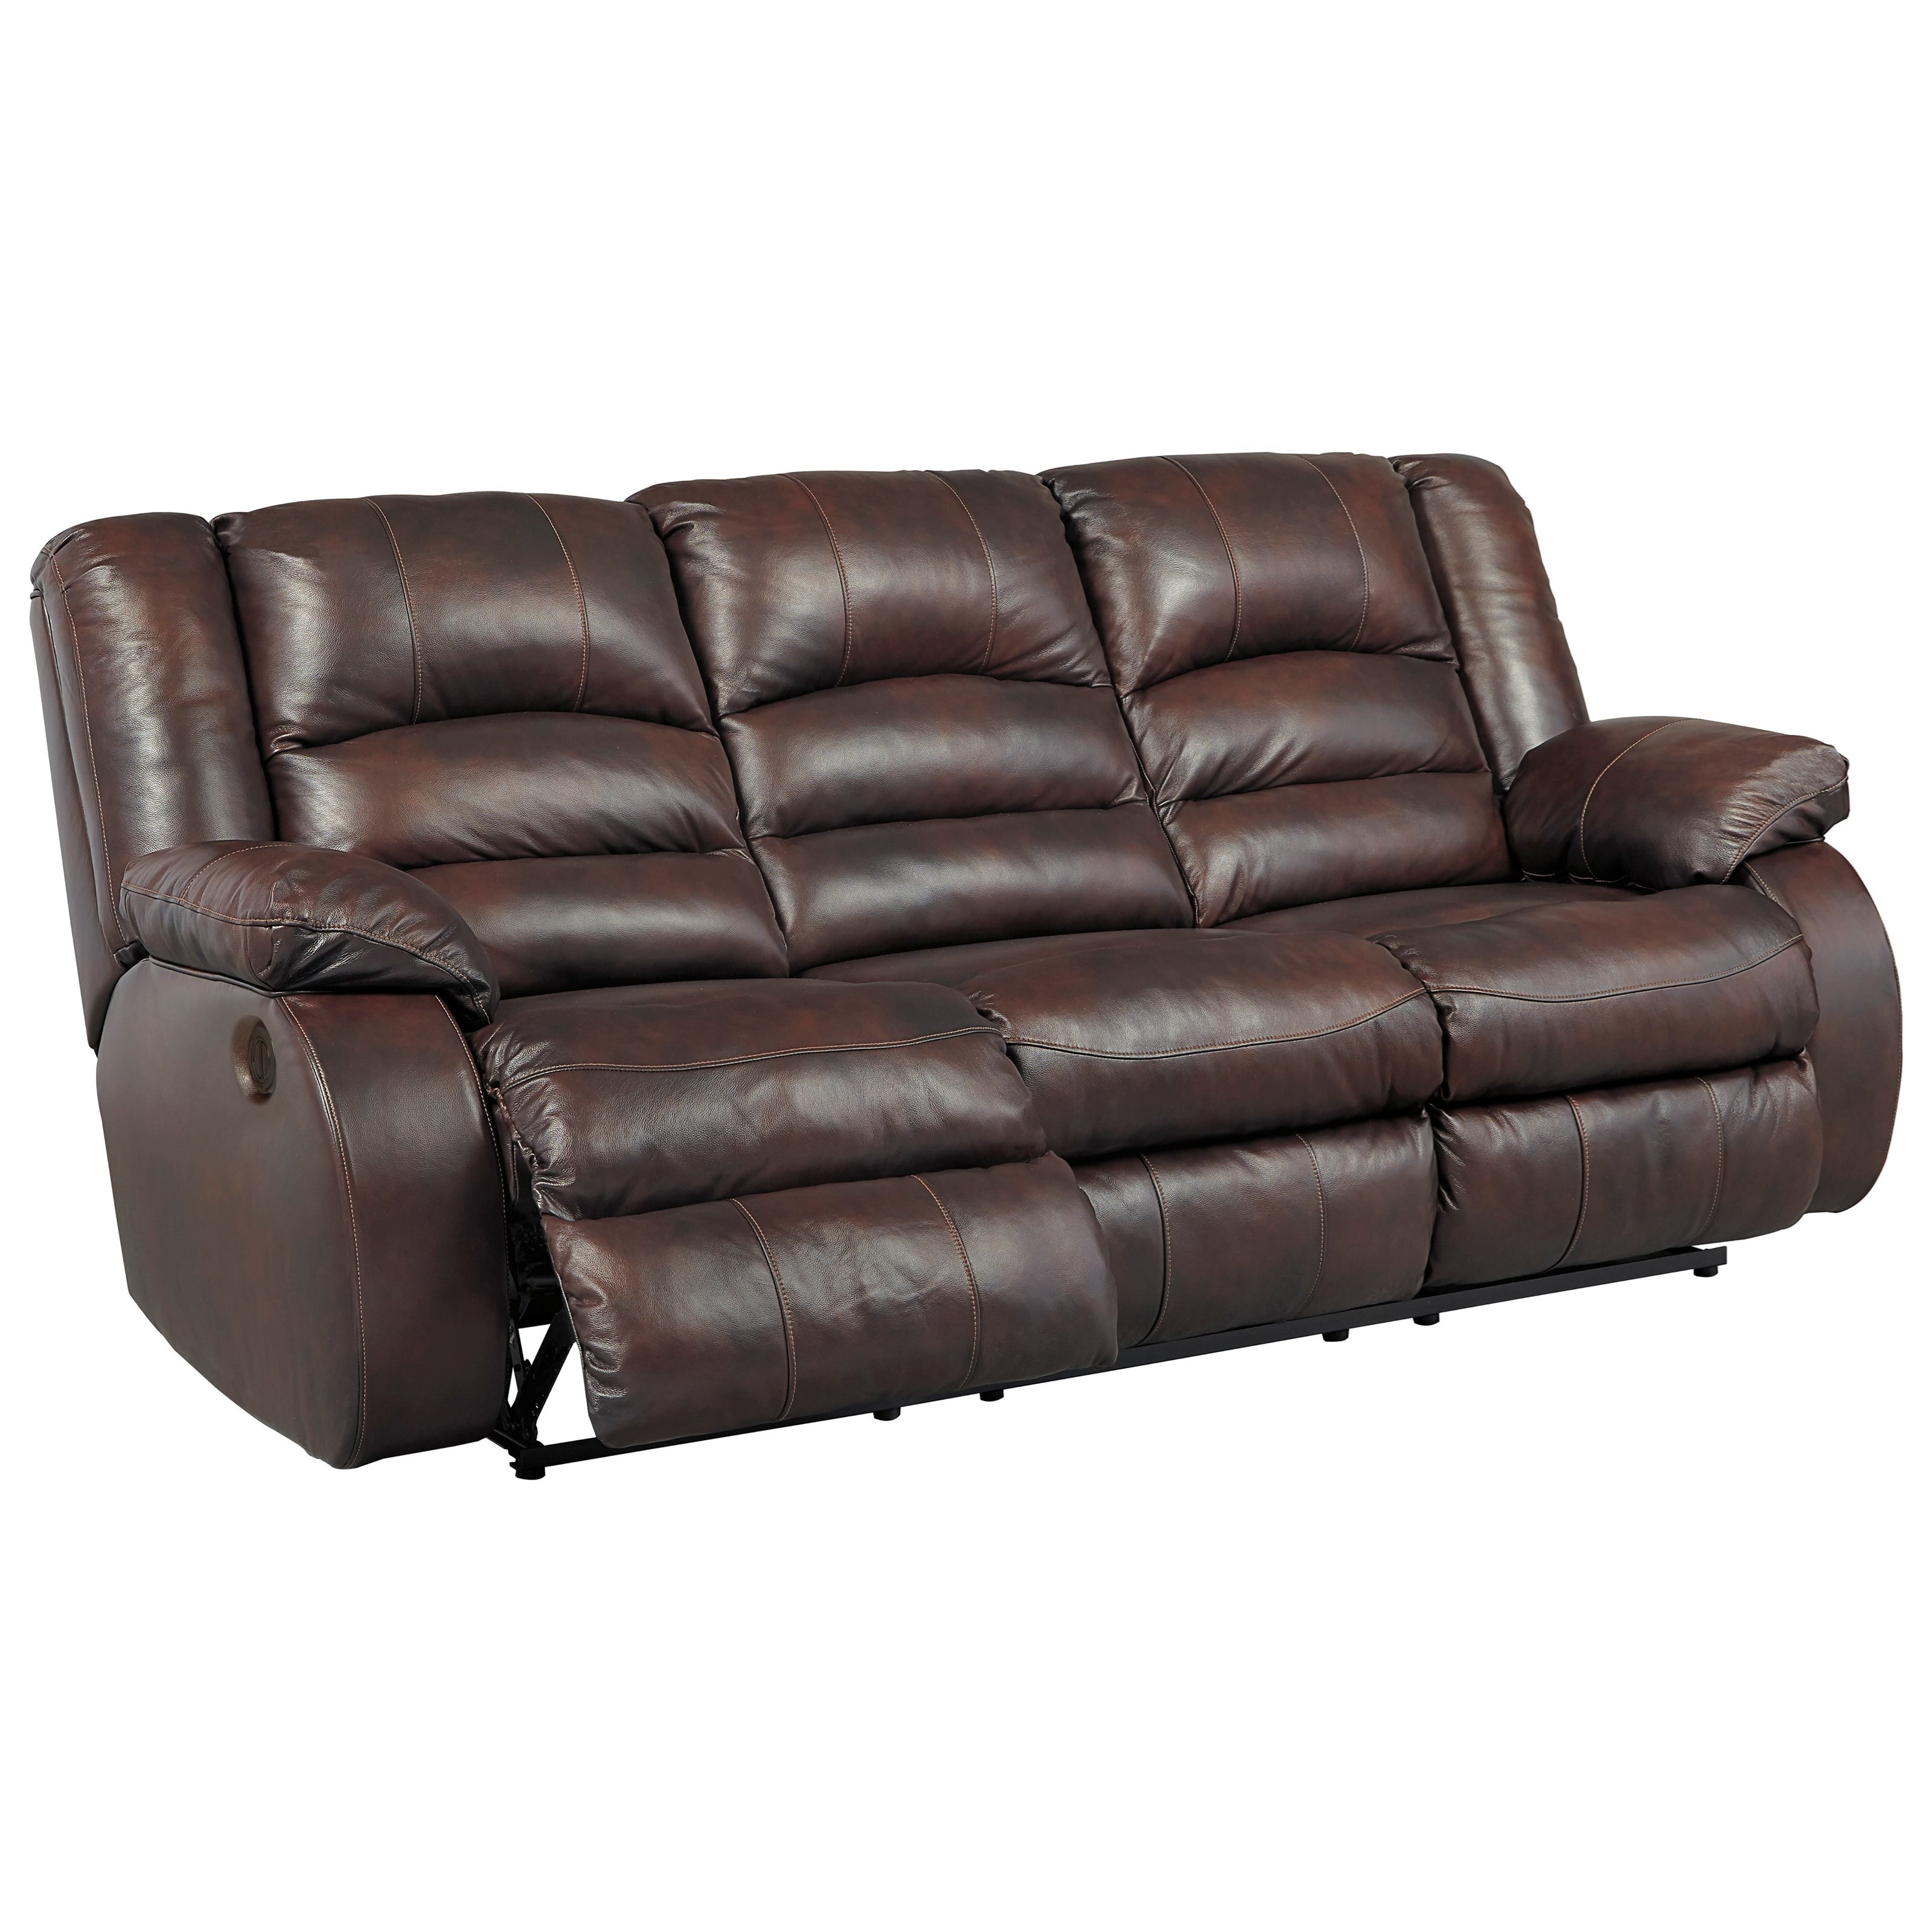 Leather Sectional Sofa With 3 Power Recliners: Ashley Signature Design Levelland 3-Piece Leather Match